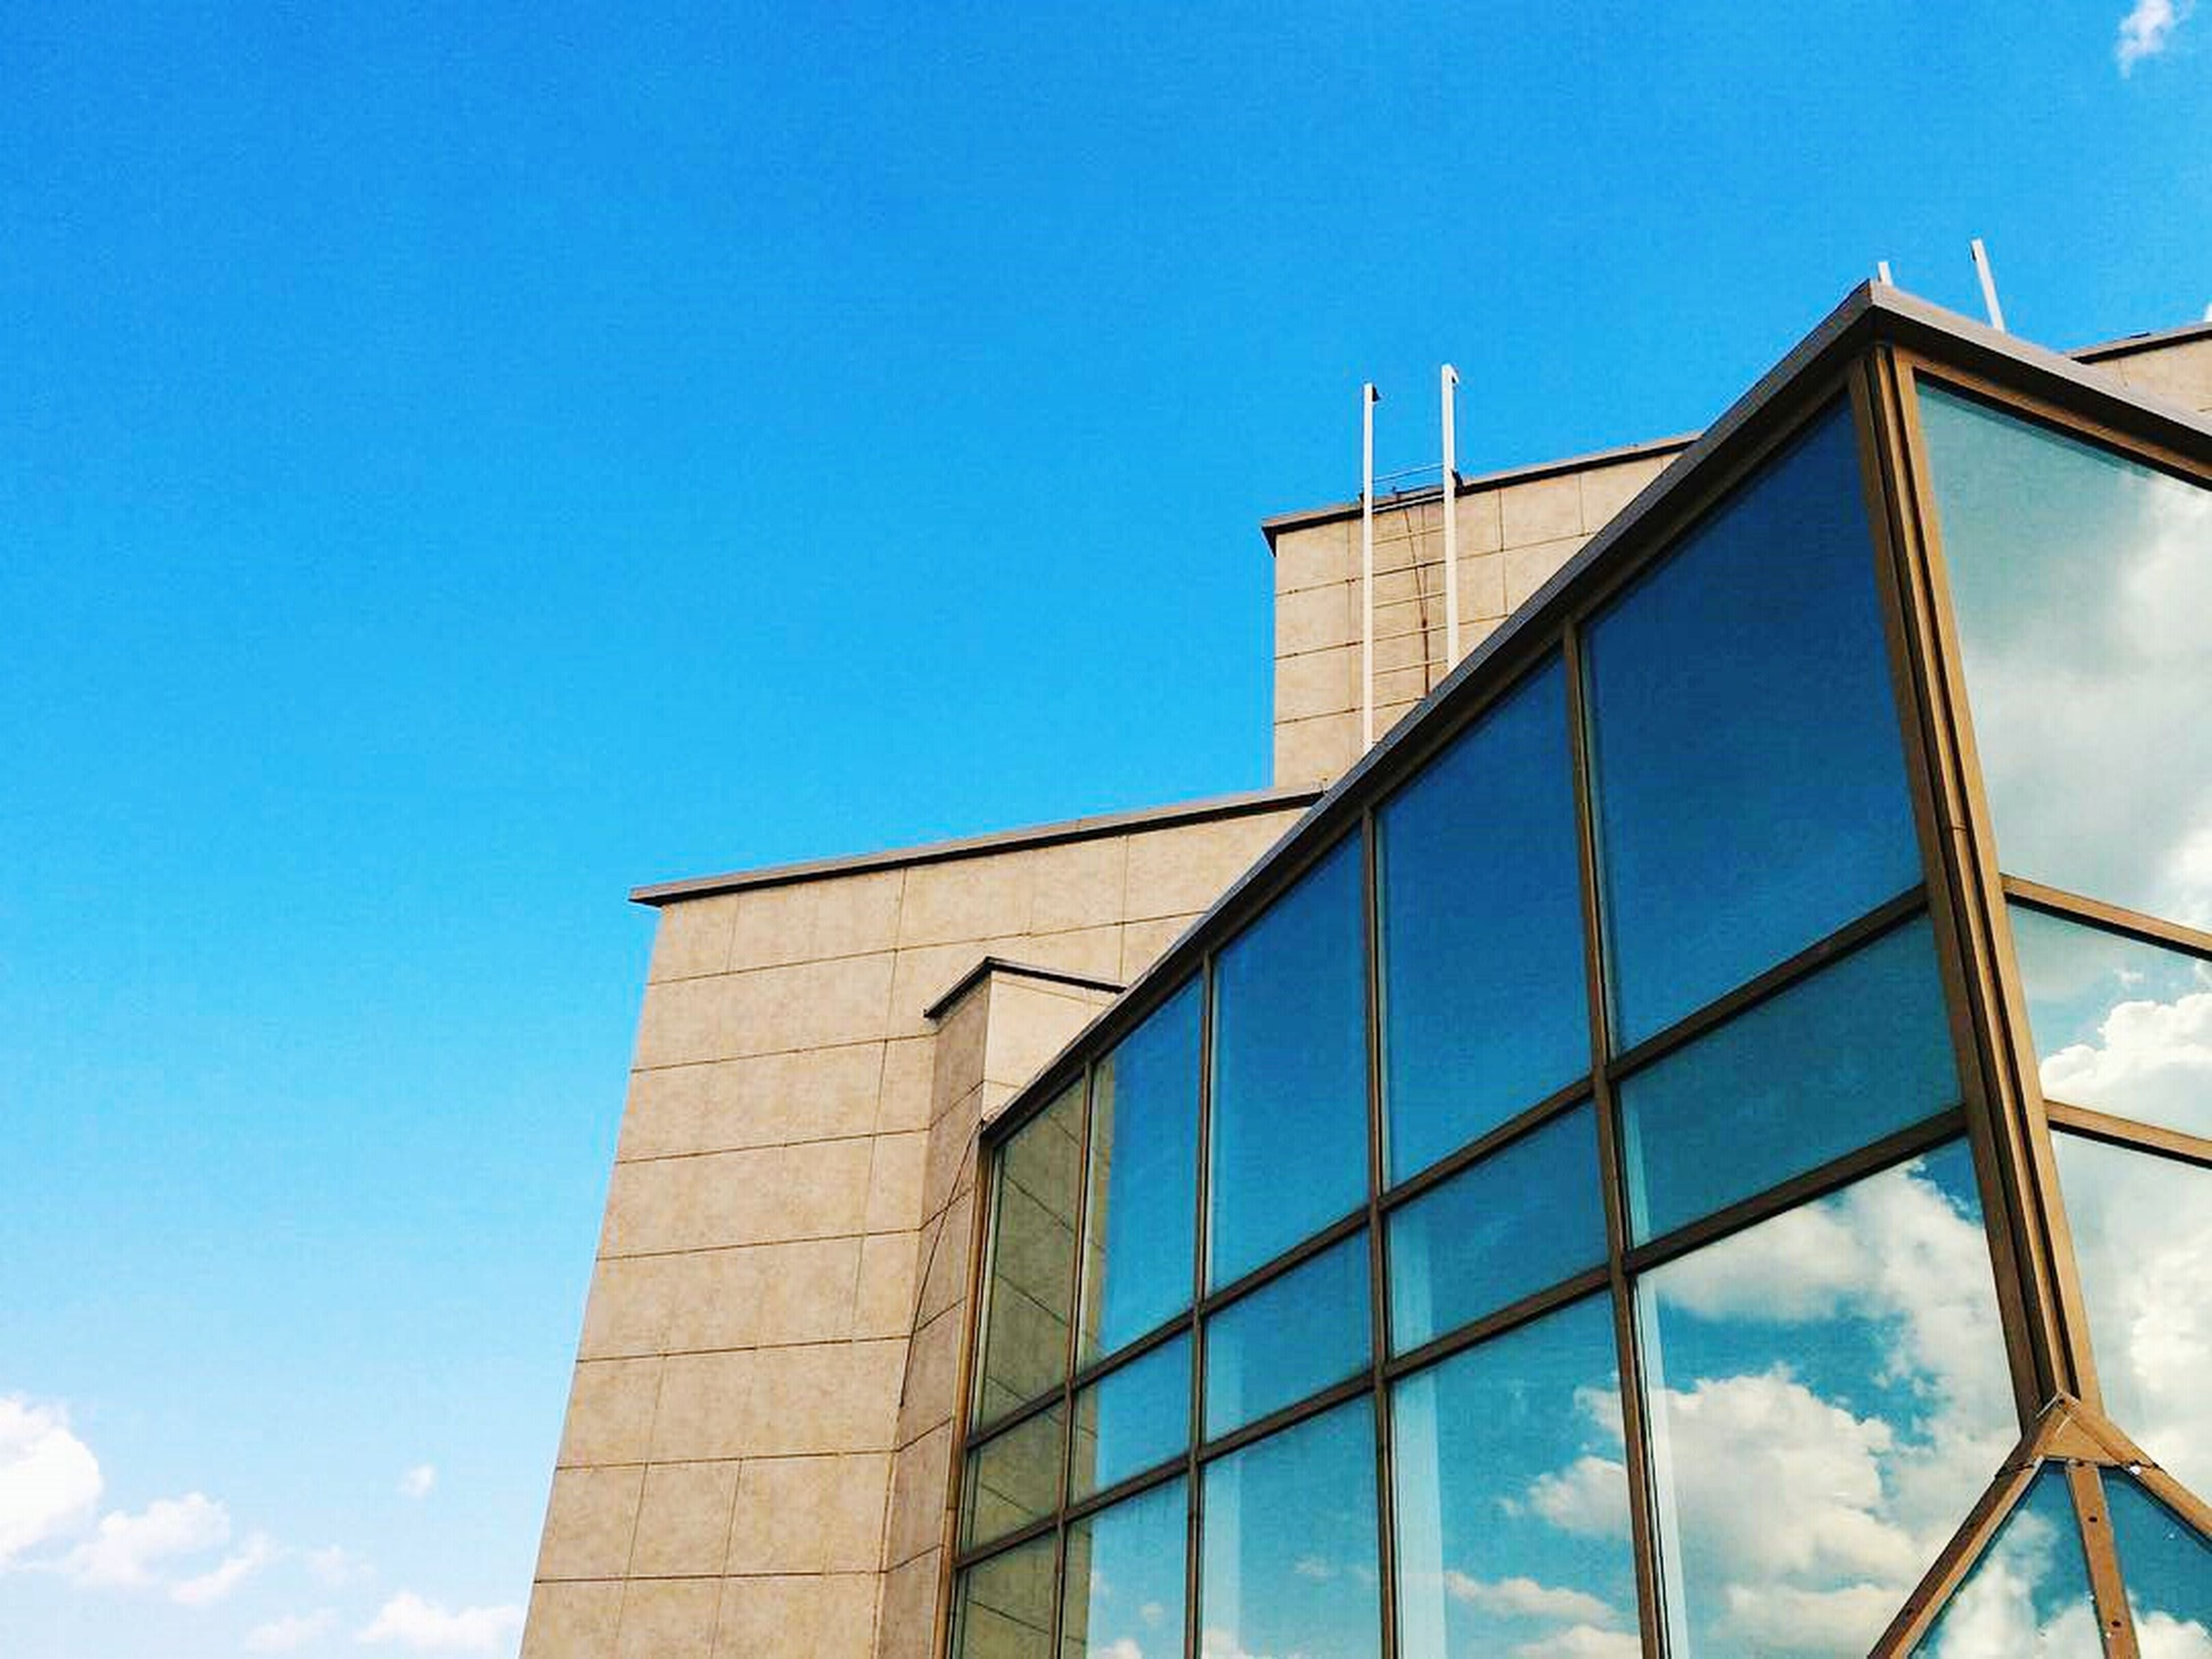 low angle view, architecture, built structure, blue, building exterior, clear sky, sky, day, tower, building, outdoors, sunlight, high section, copy space, tall - high, no people, modern, city, window, glass - material